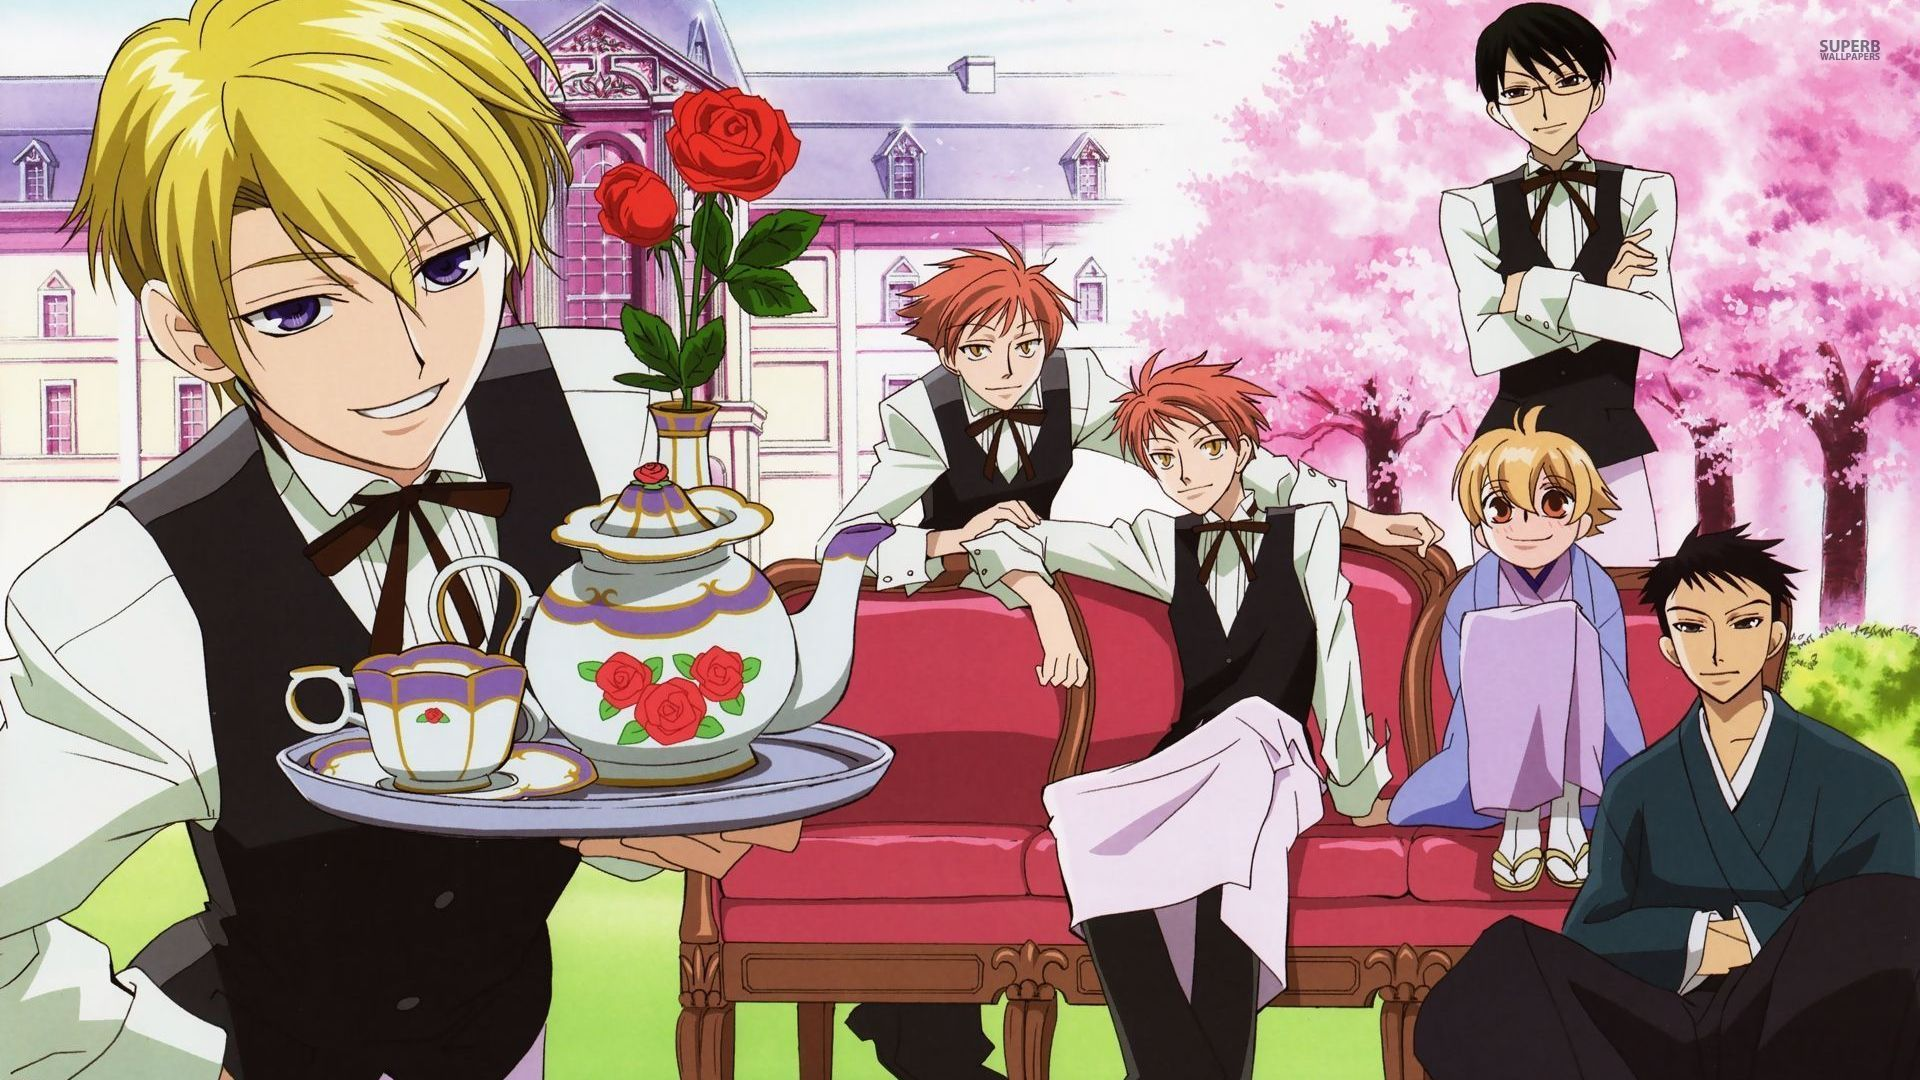 Ouran high school host club wallpapers high quality | download free.